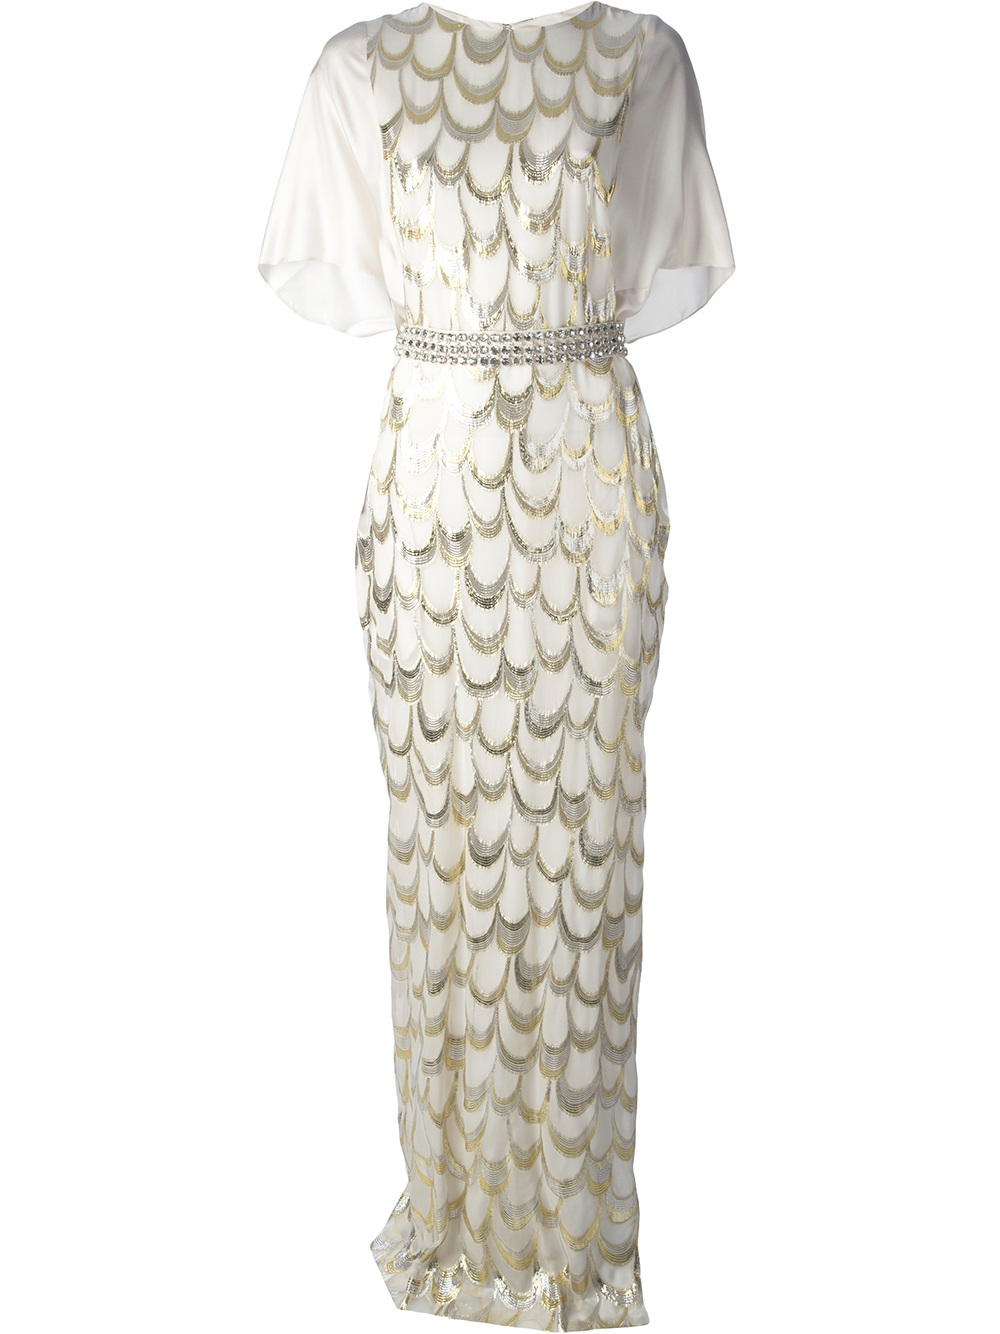 ac49633283a By Malene Birger Diamante Maxi Dress in White - Lyst